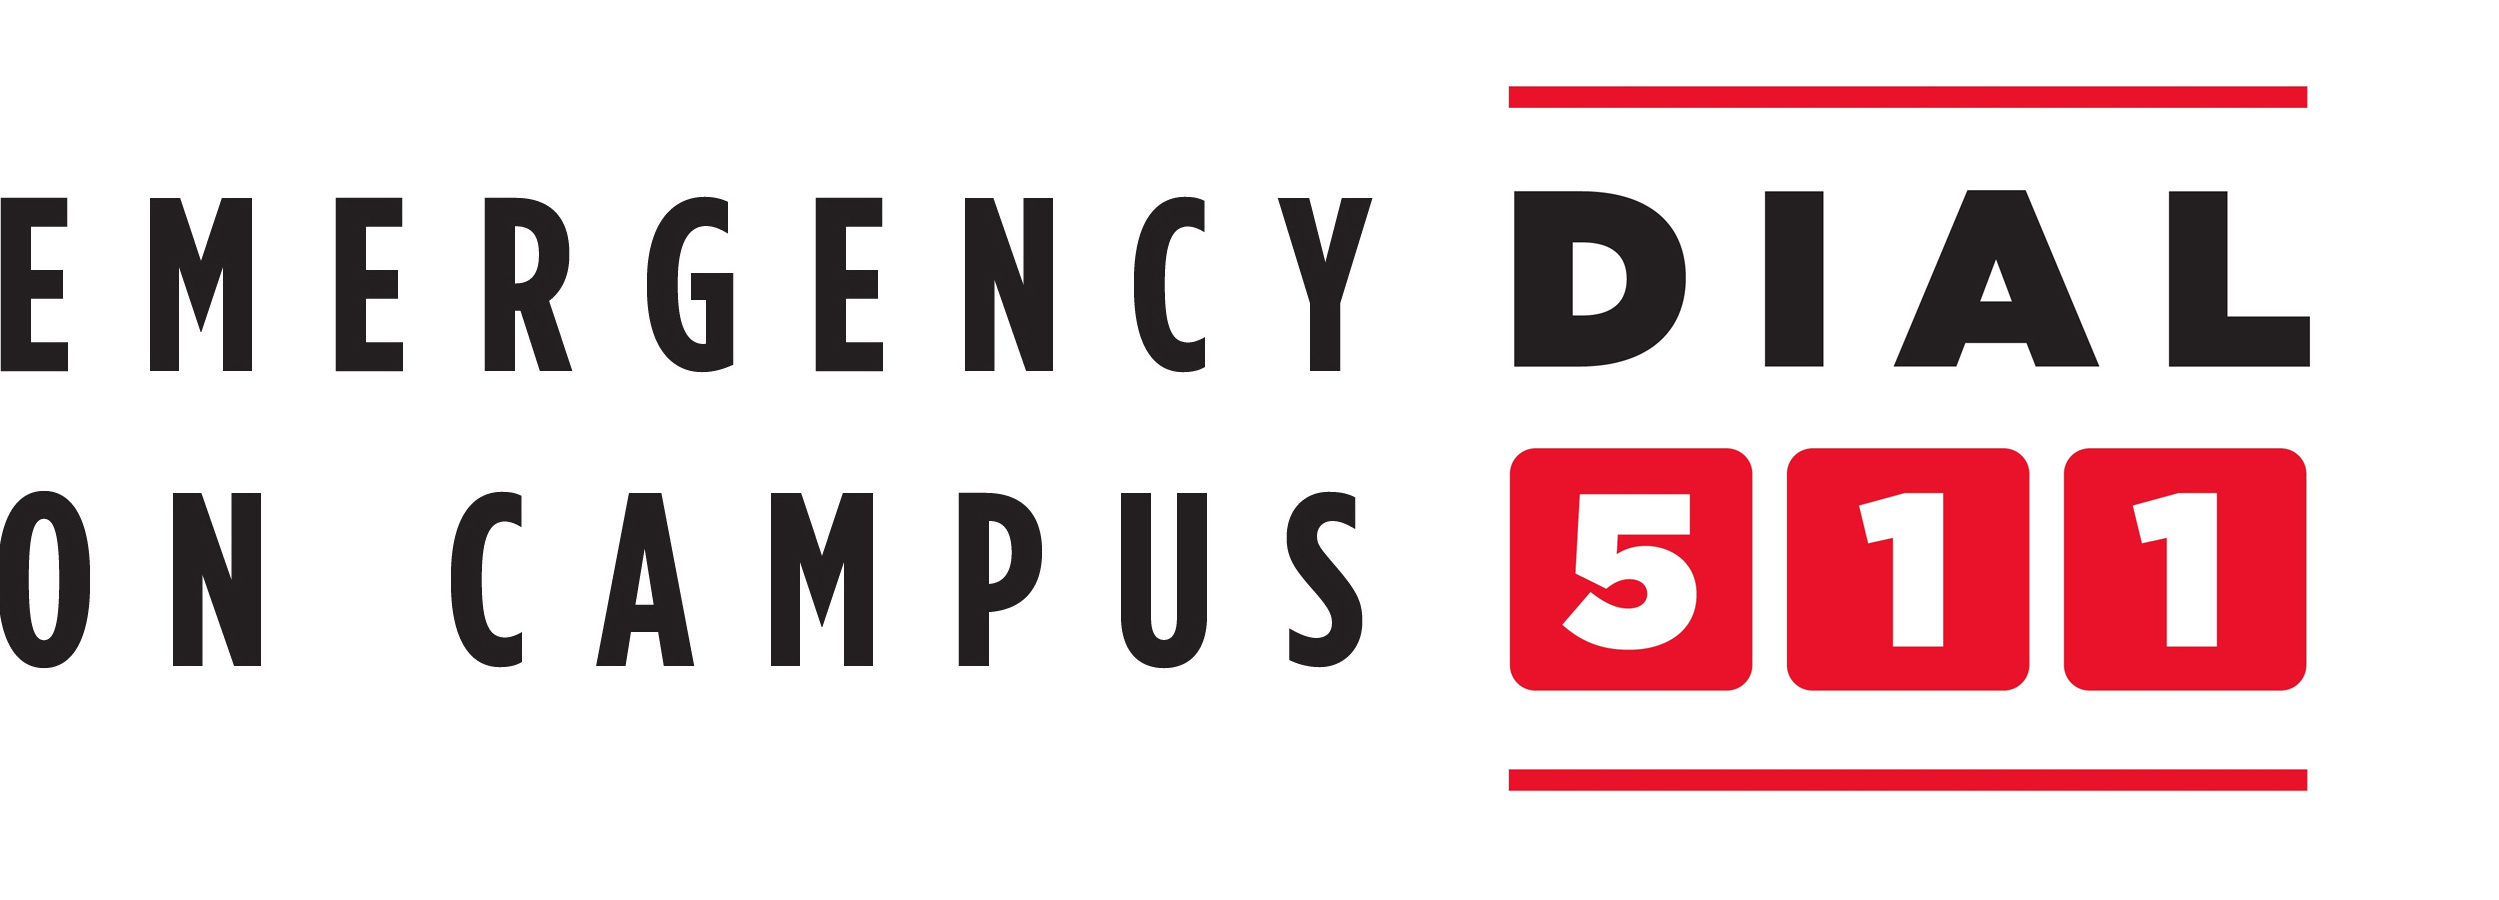 Dial 5-1-1 on Campus During an Emergency